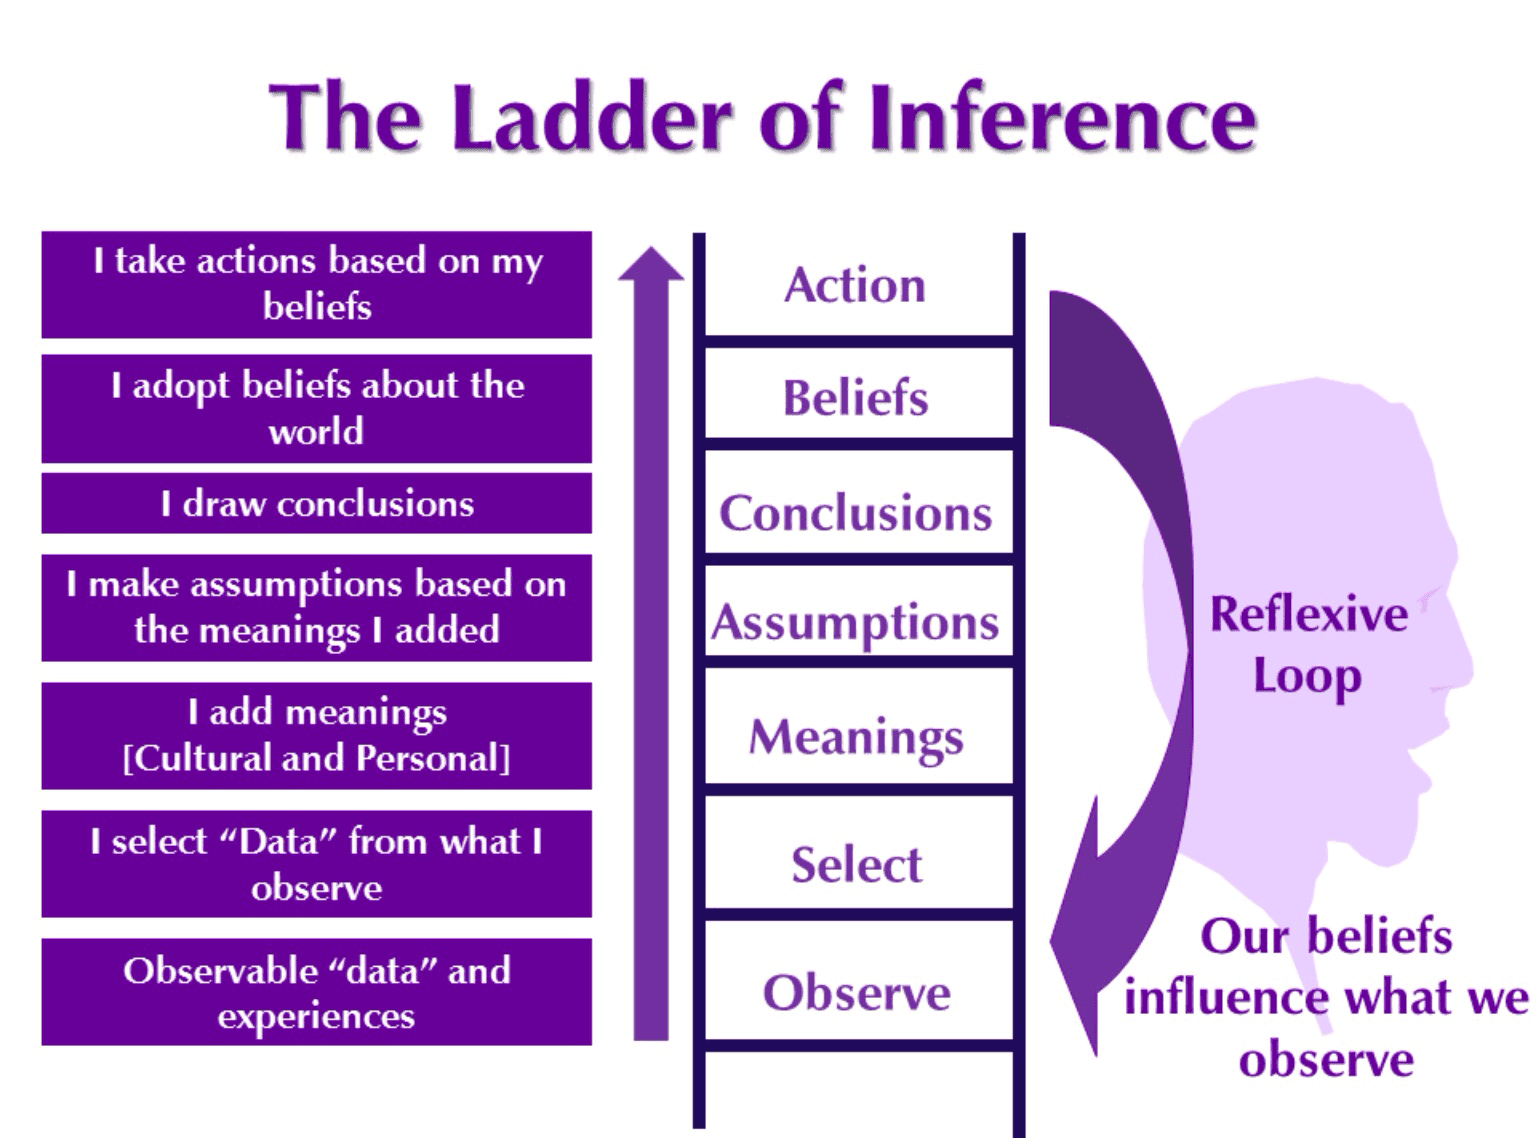 Using The Ladder Of Inference